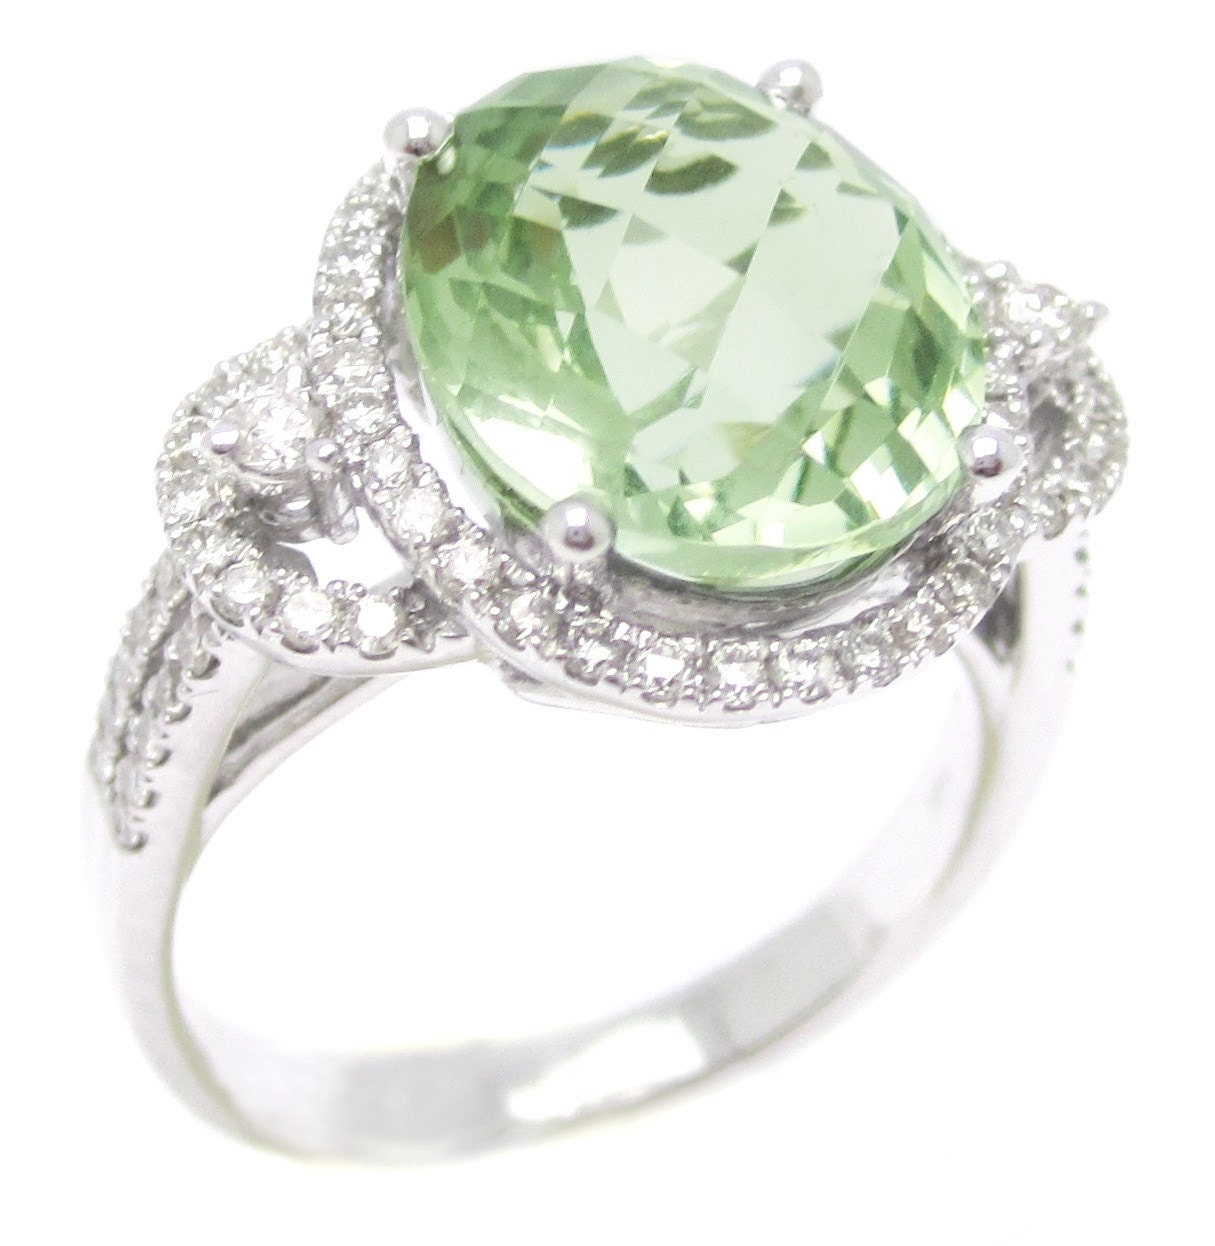 5 18ctw Oval Cut Light Green Topaz Amp Diamonds Engagement Ring